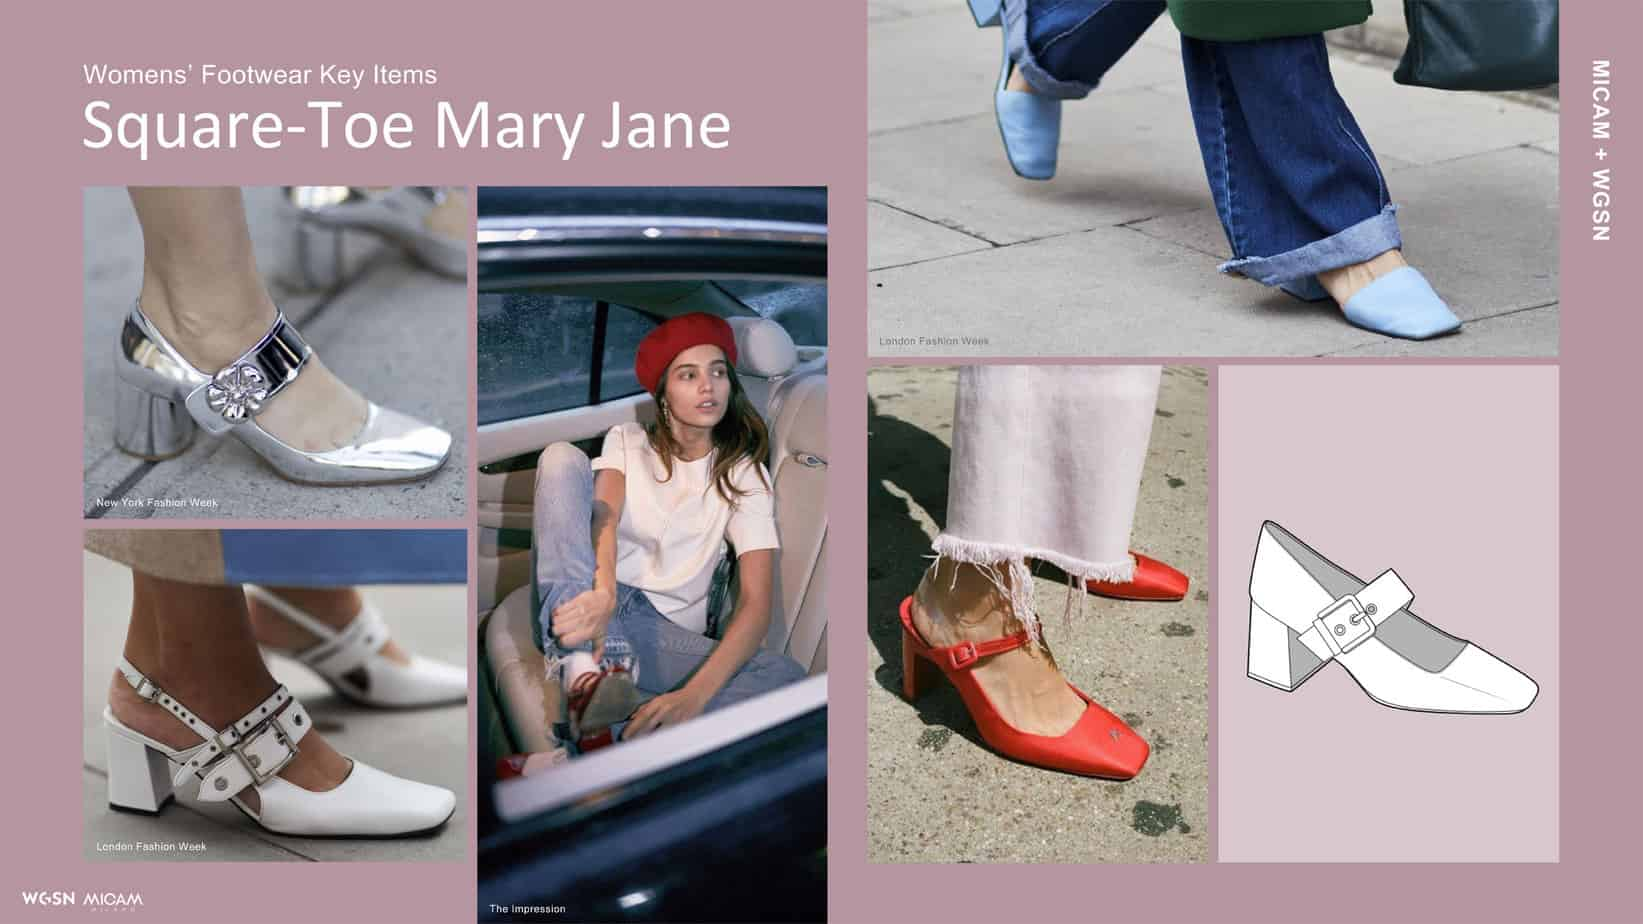 Womens' Footwear Key Items Square-Toe Mary Jane